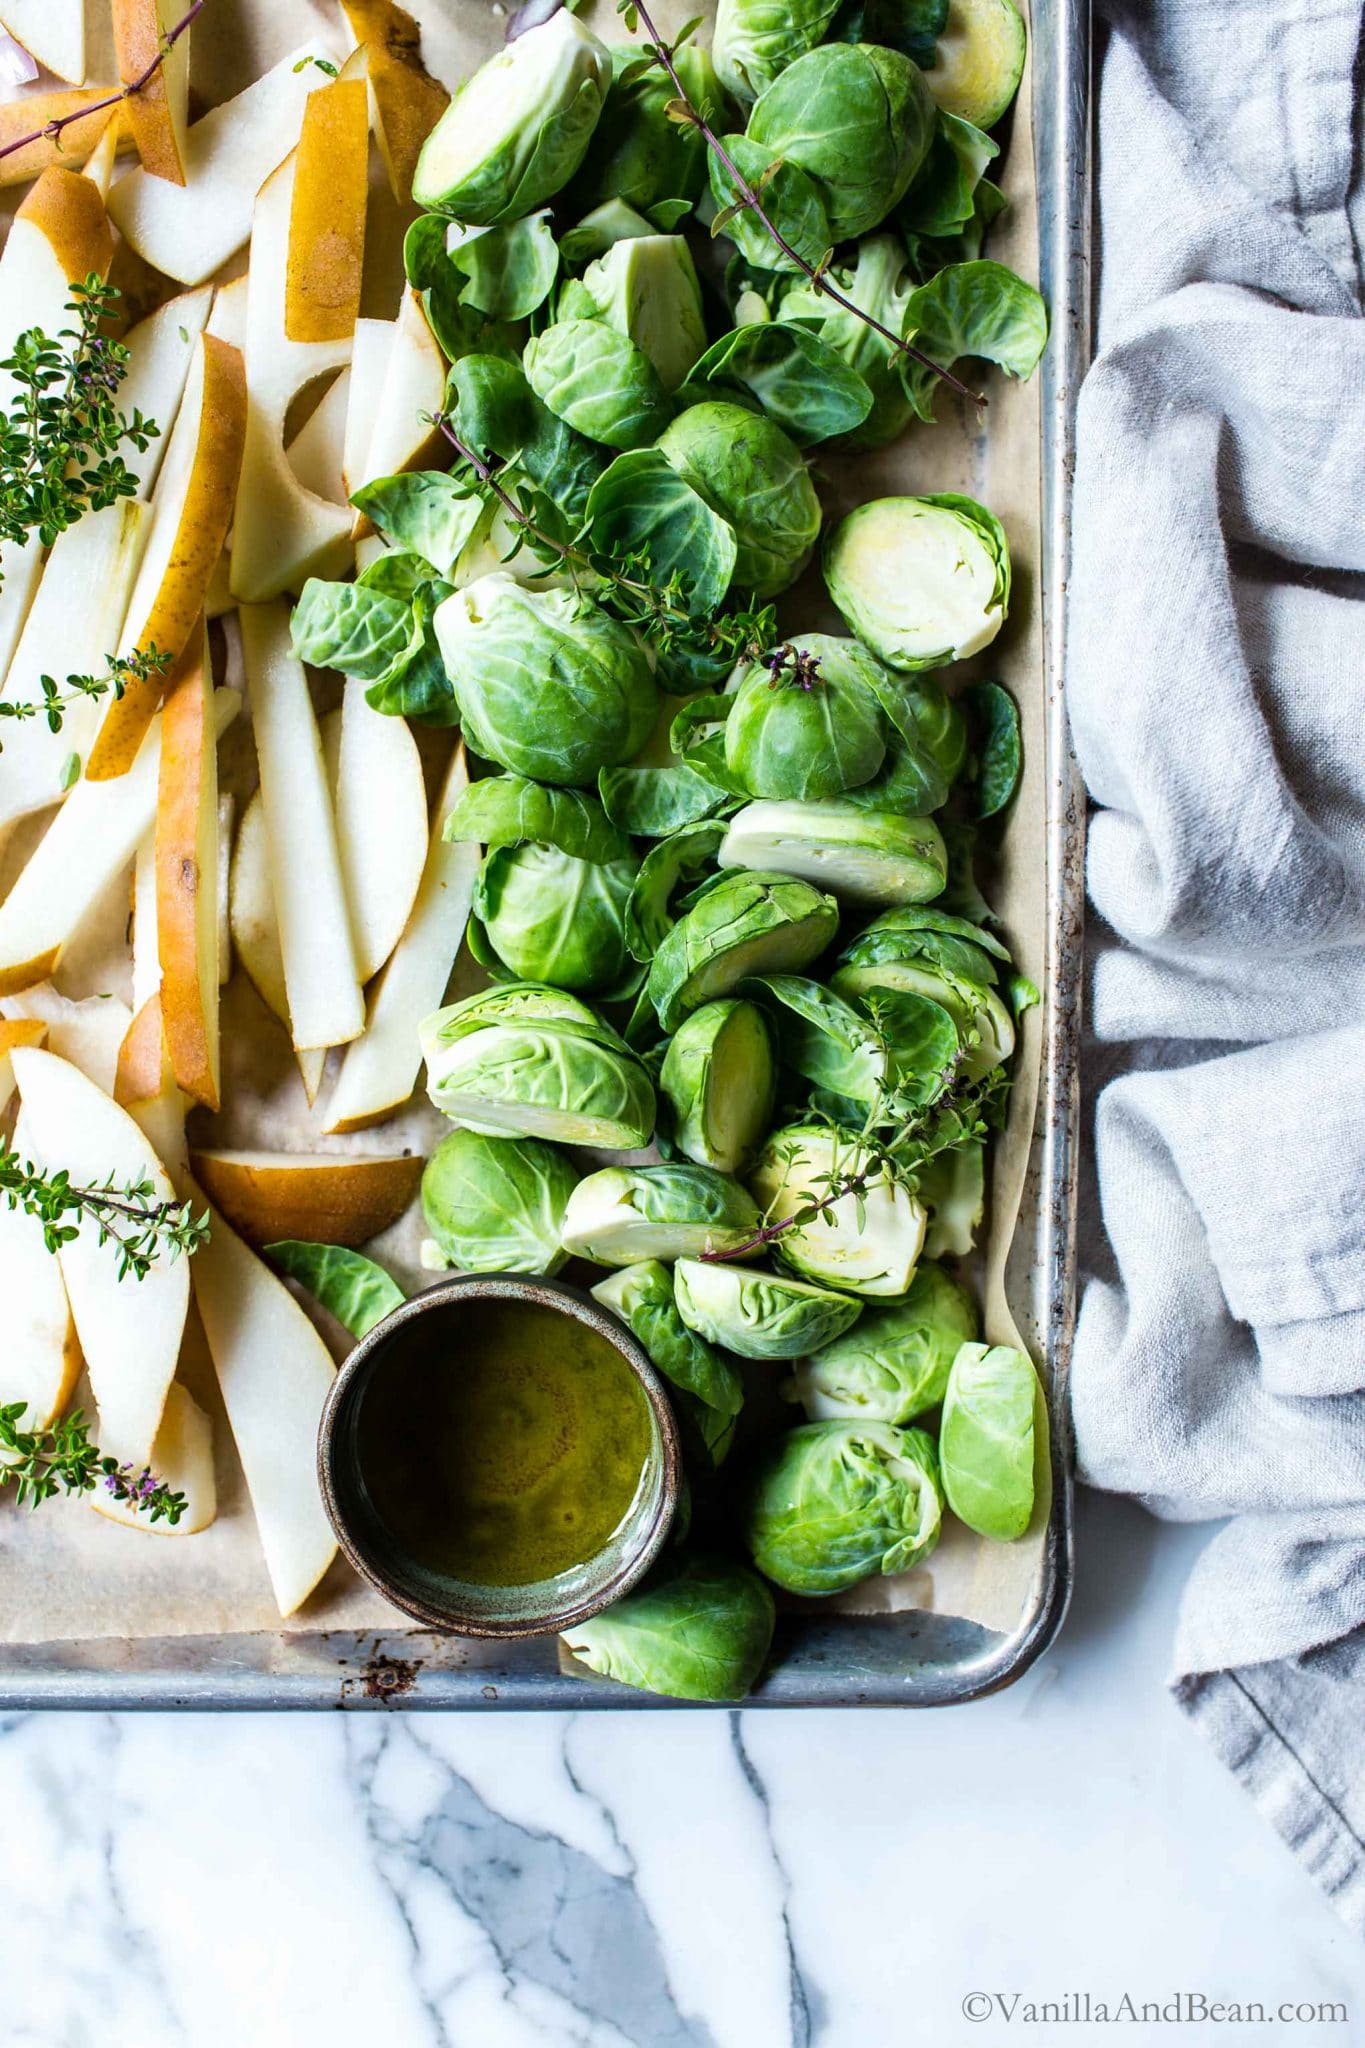 Sliced Brussels sprouts with pears and Thyme ready for roasting on a sheet pan.